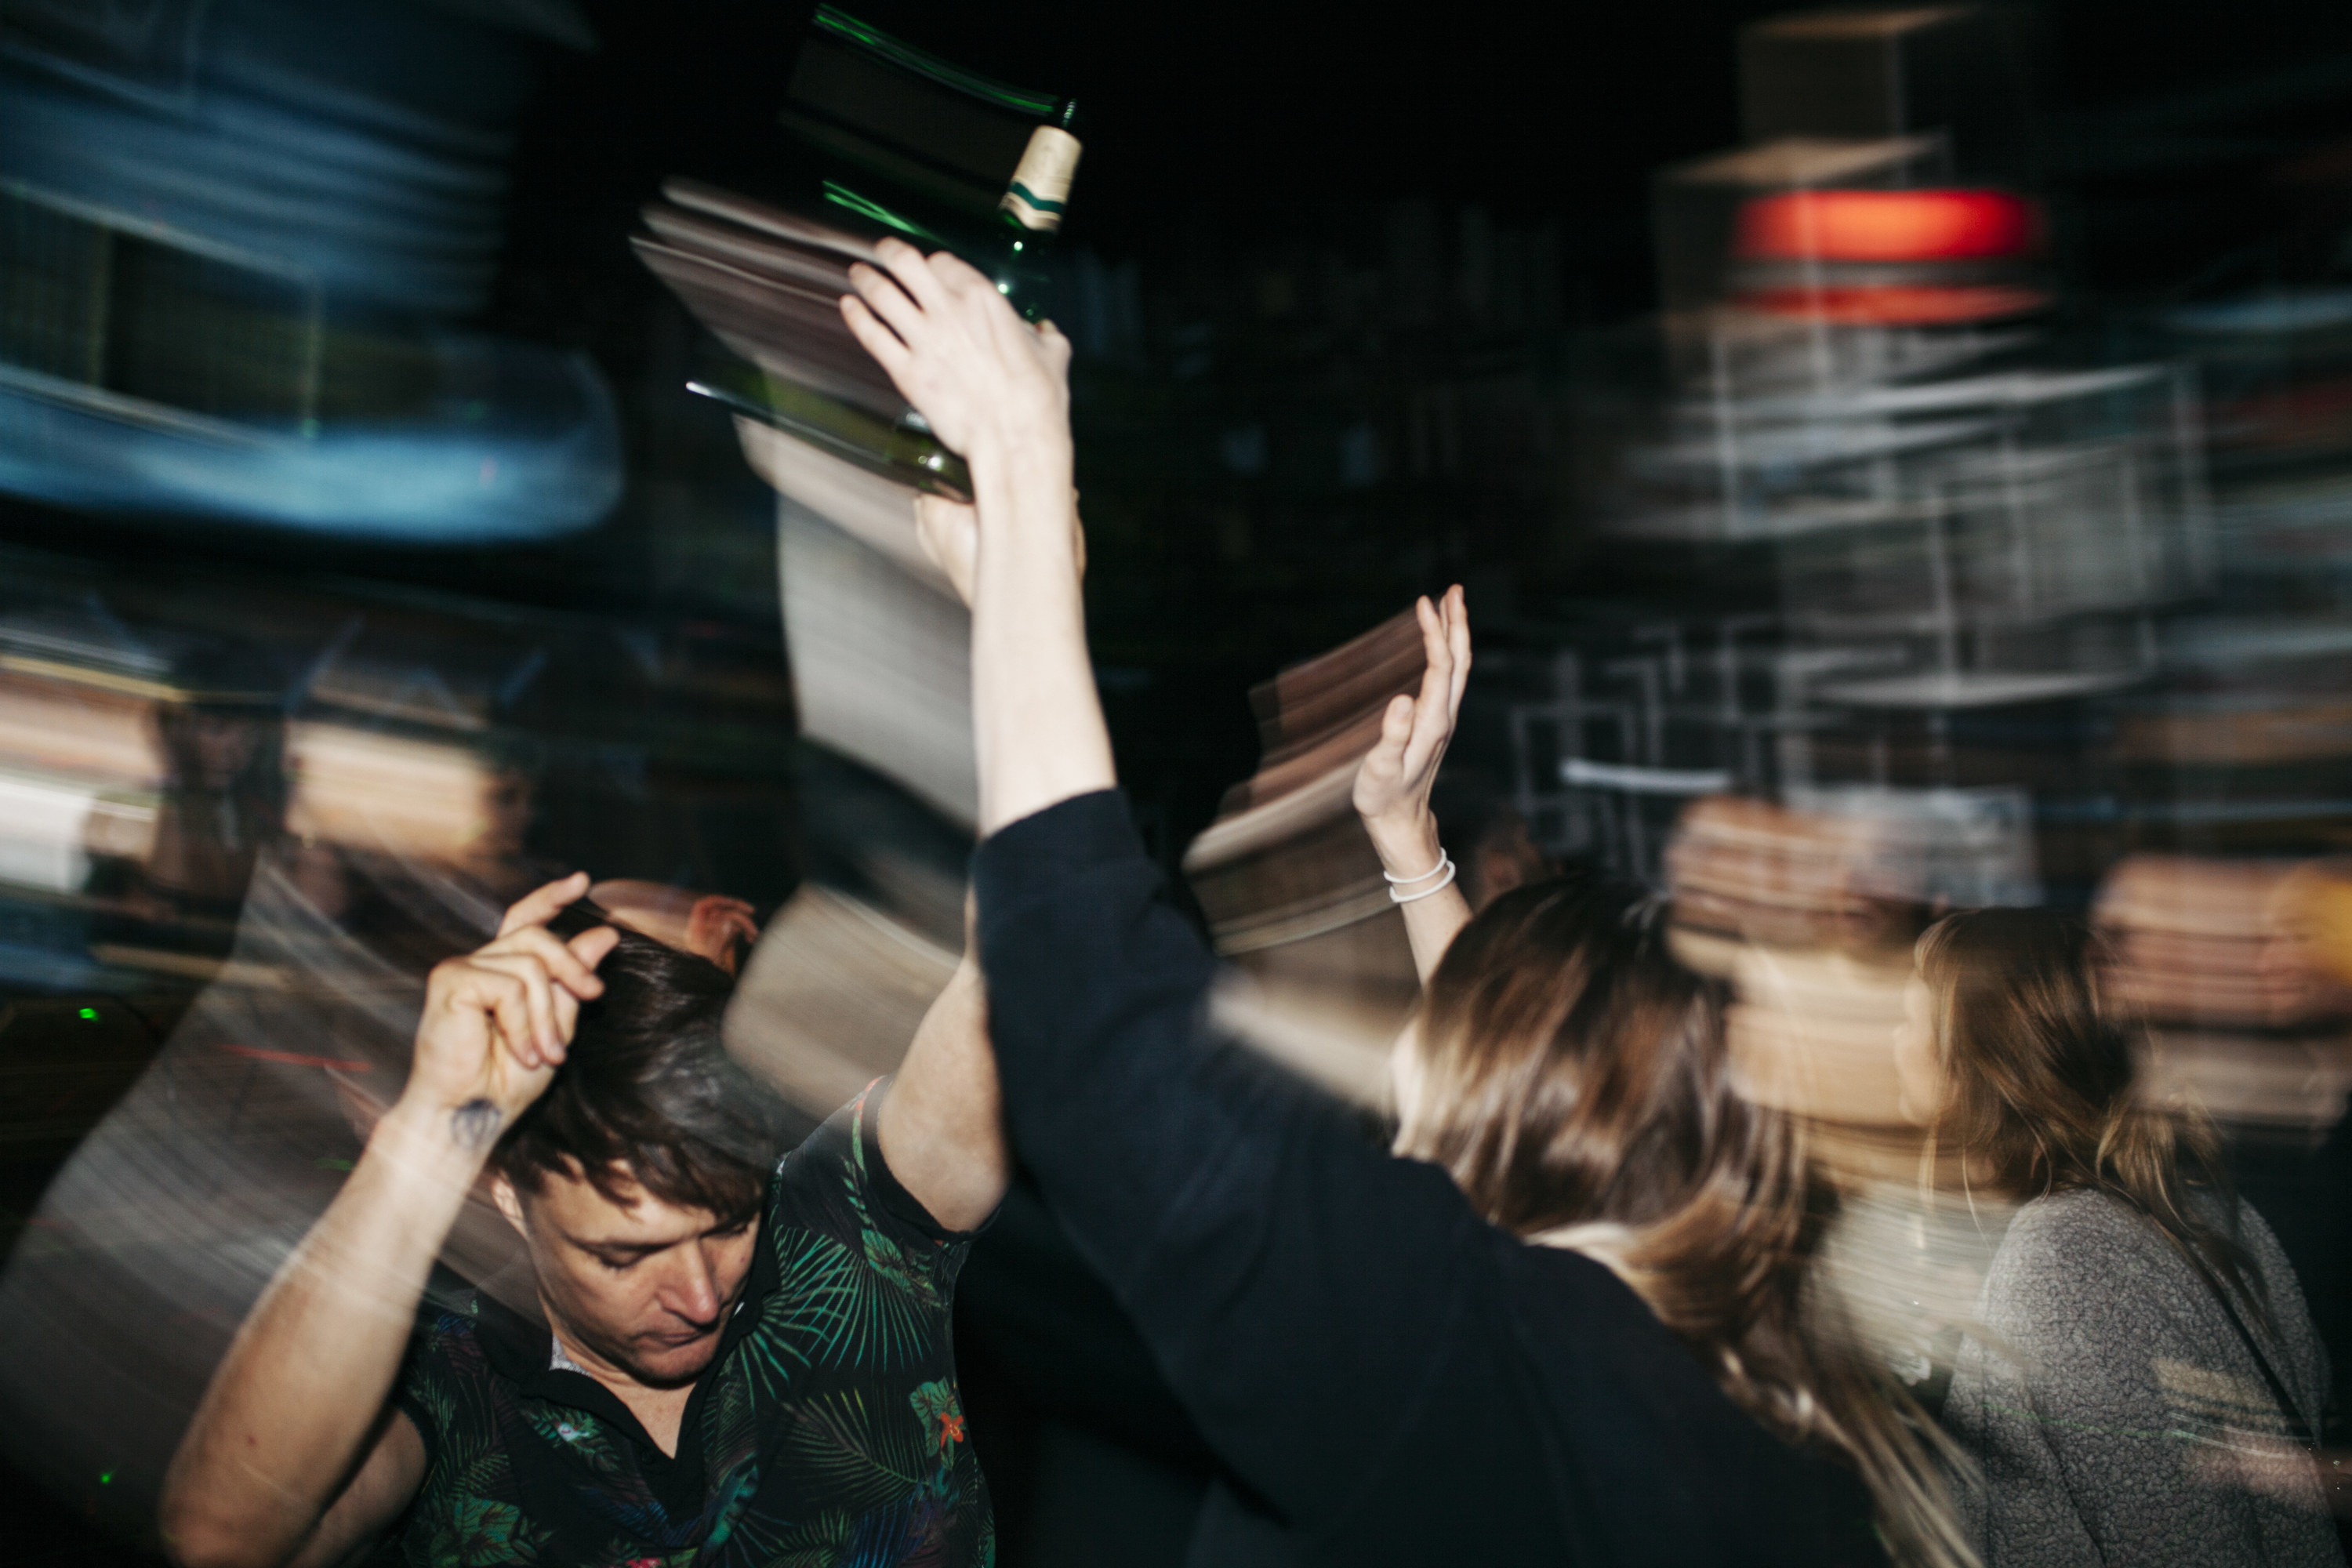 A blurry photo of people dancing at a party in the dark